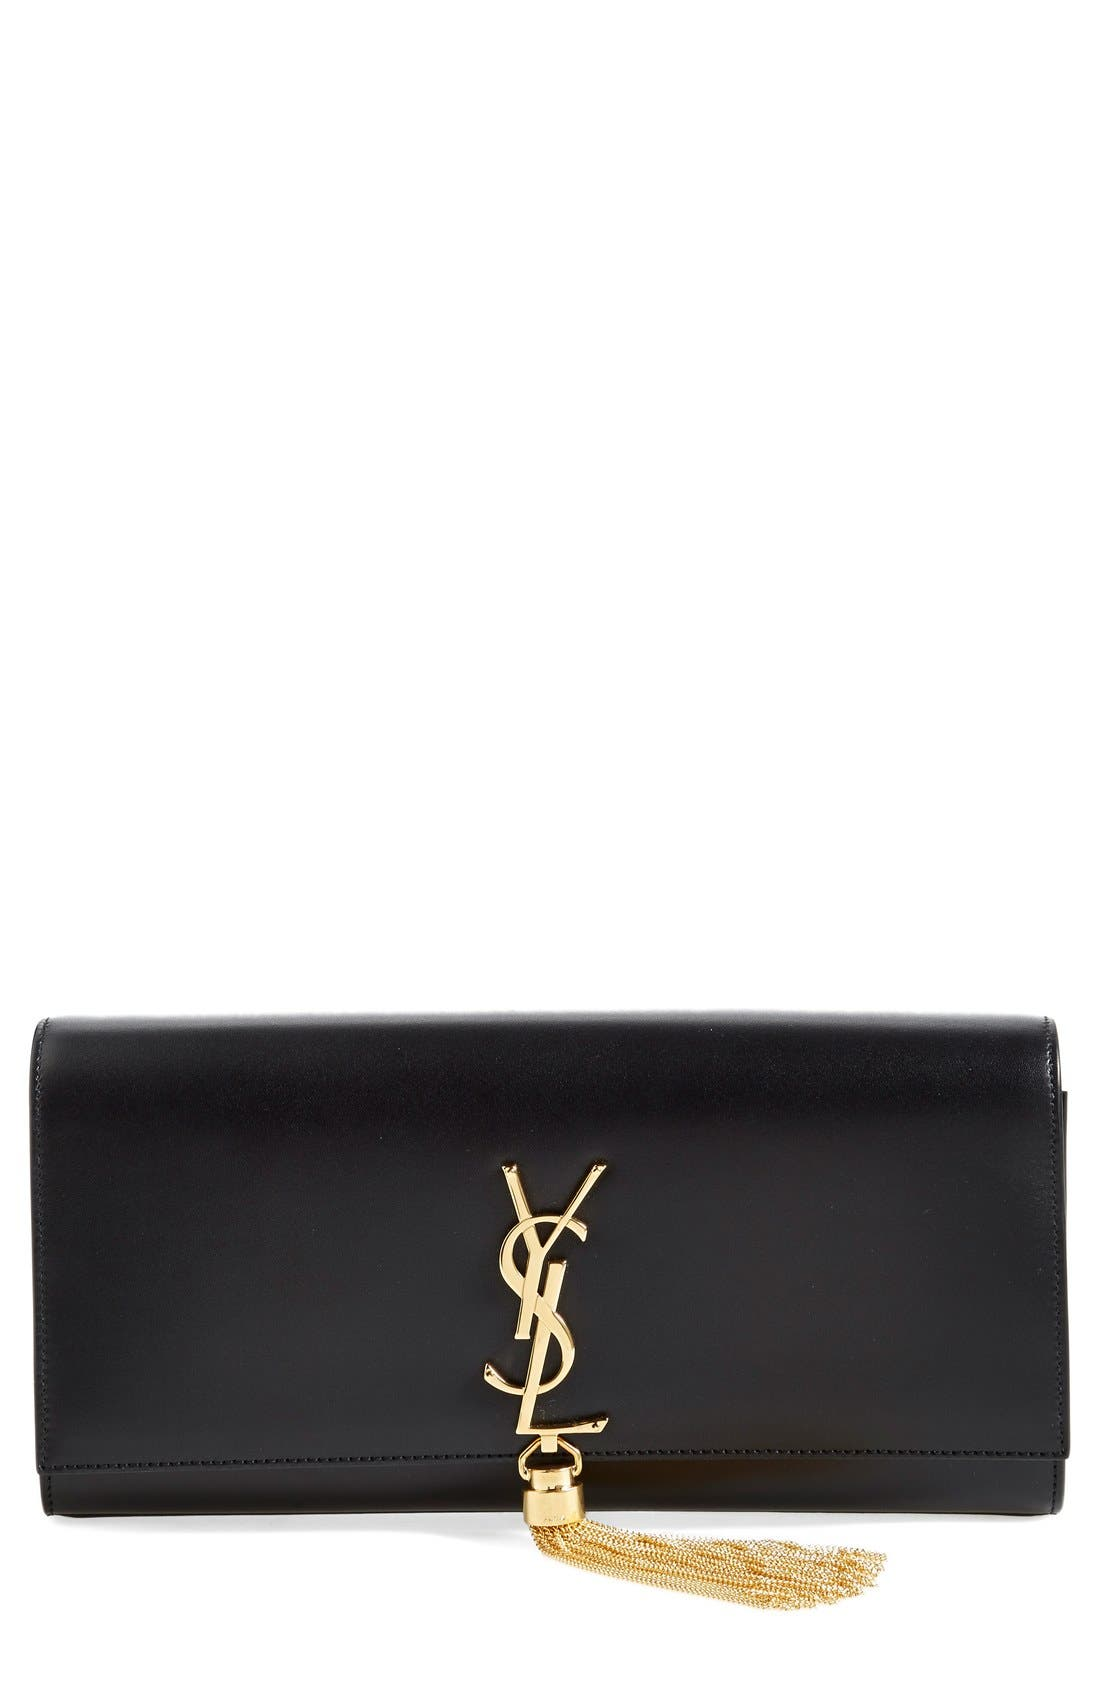 Main Image - Saint Laurent 'Cassandre' Tassel Leather Clutch